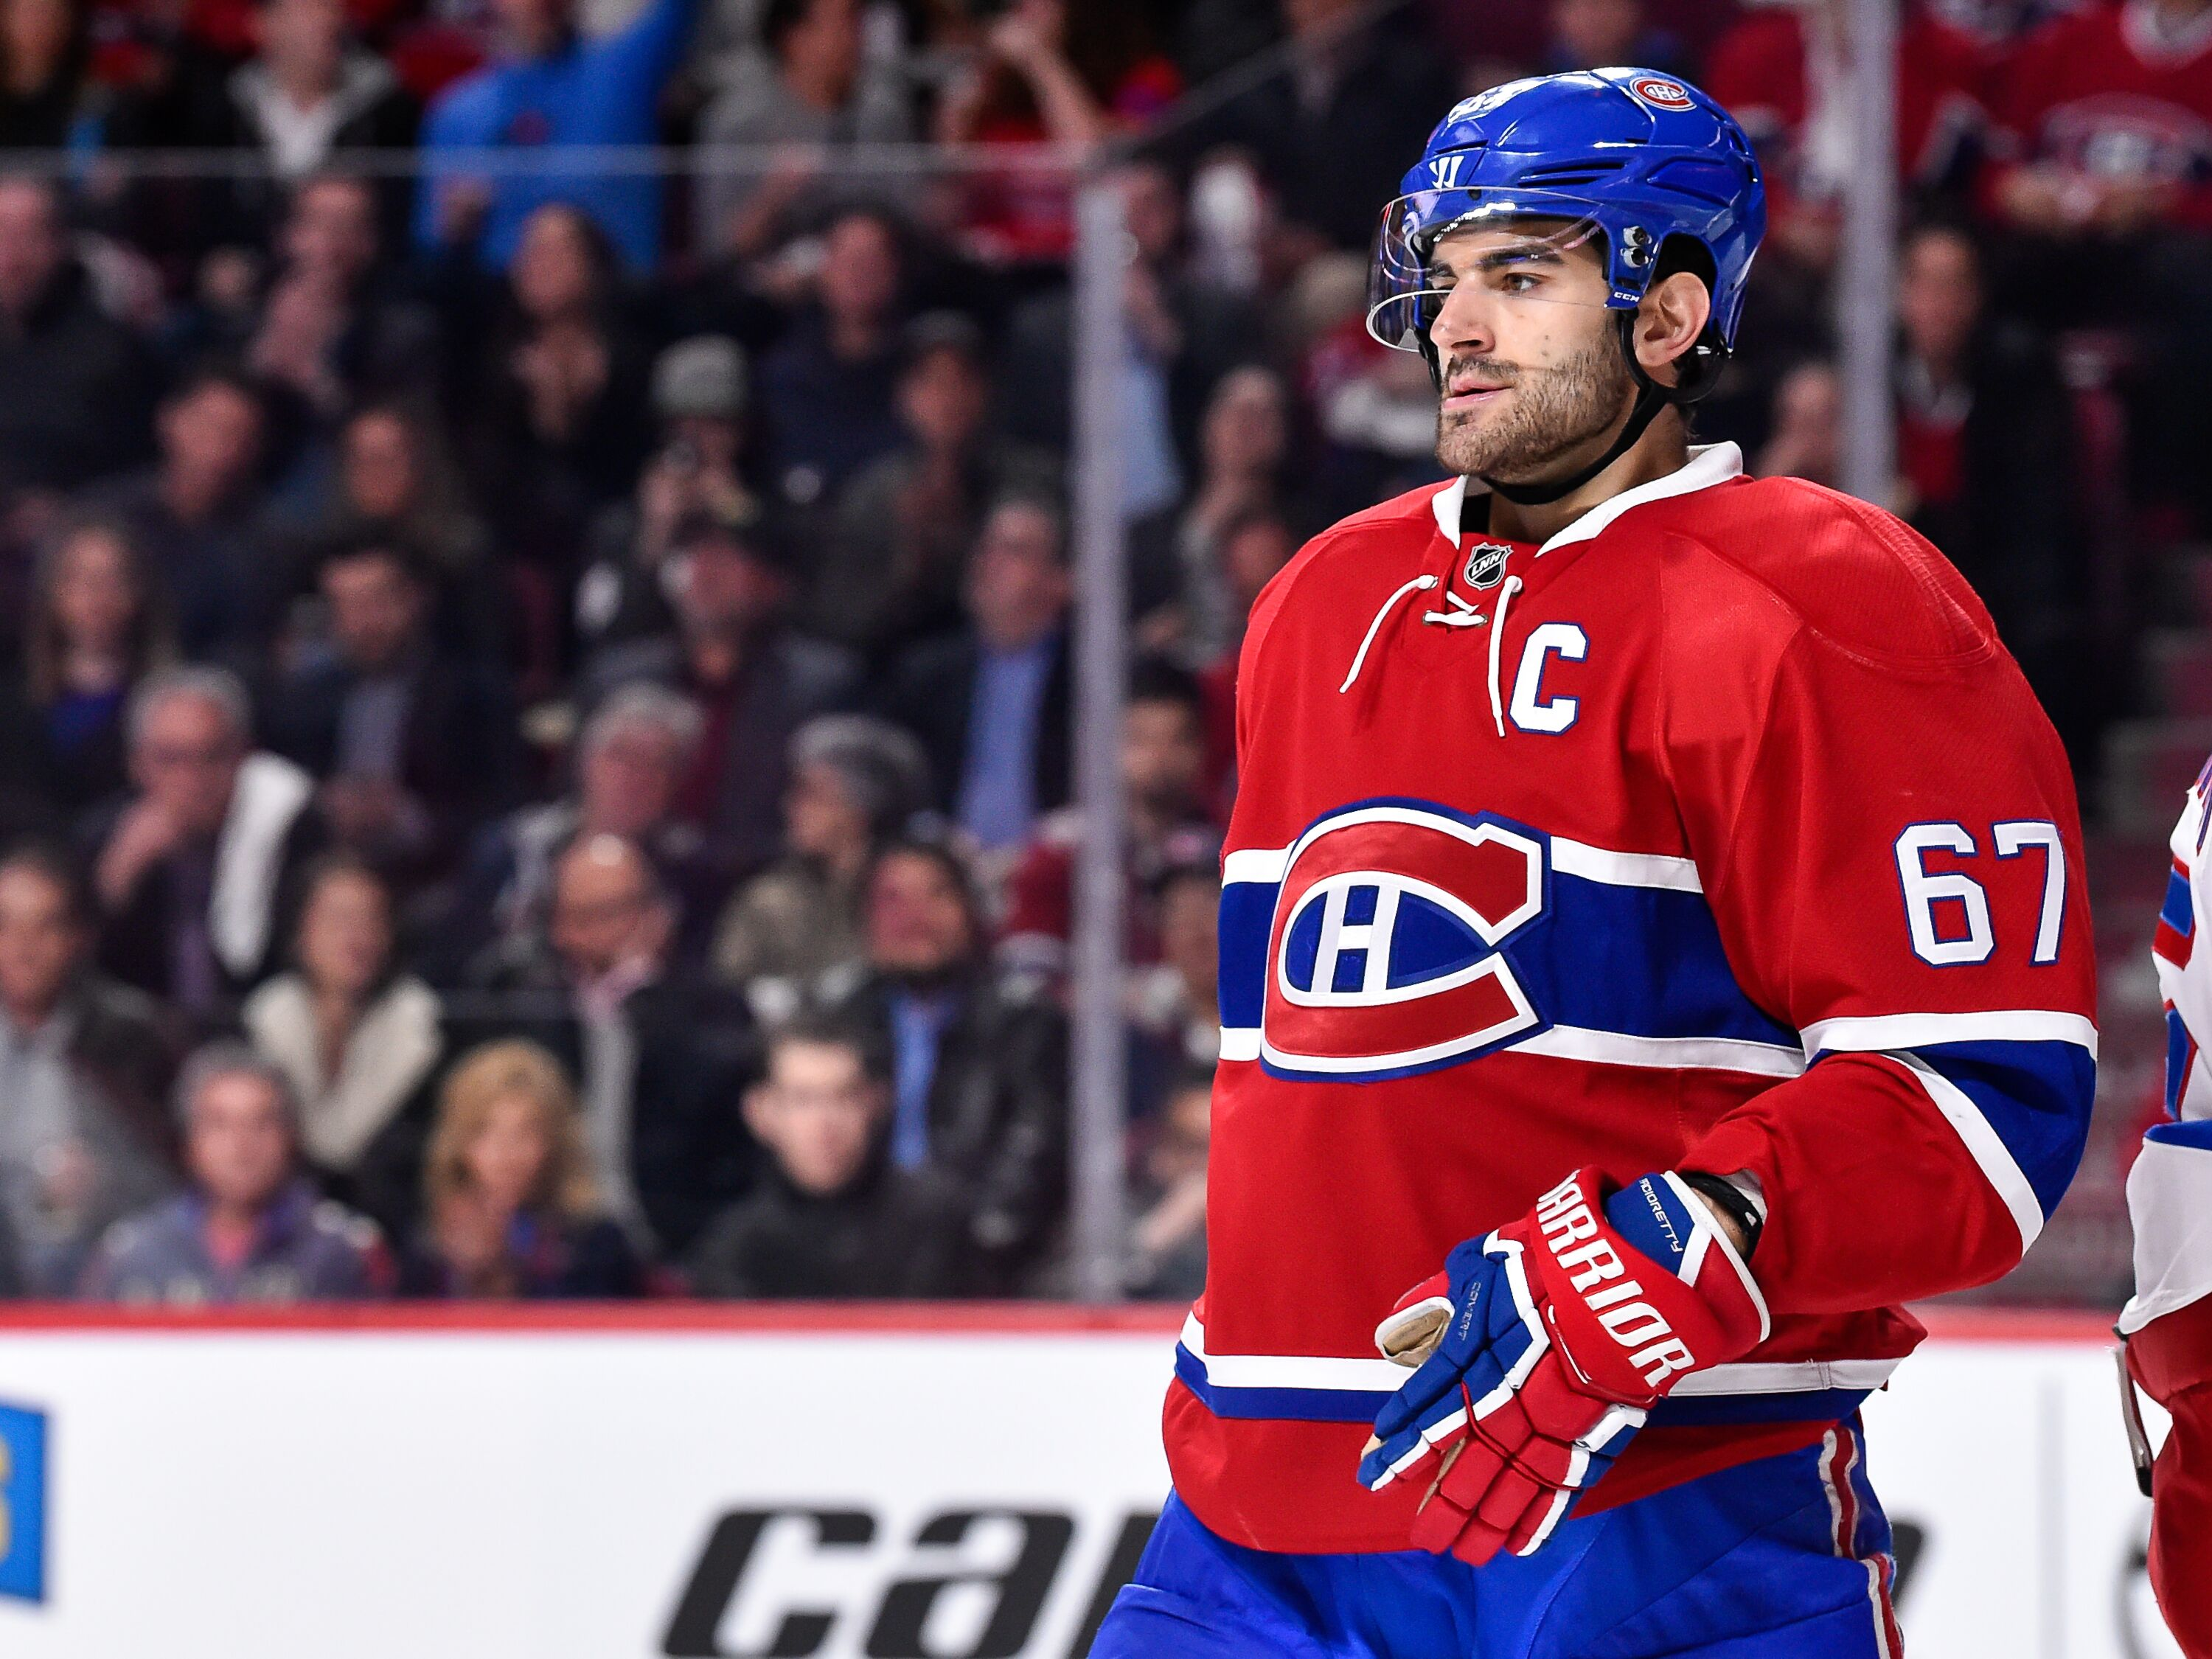 87b51c9620b The most direct comparison in both stats and age would be Max Pacioretty